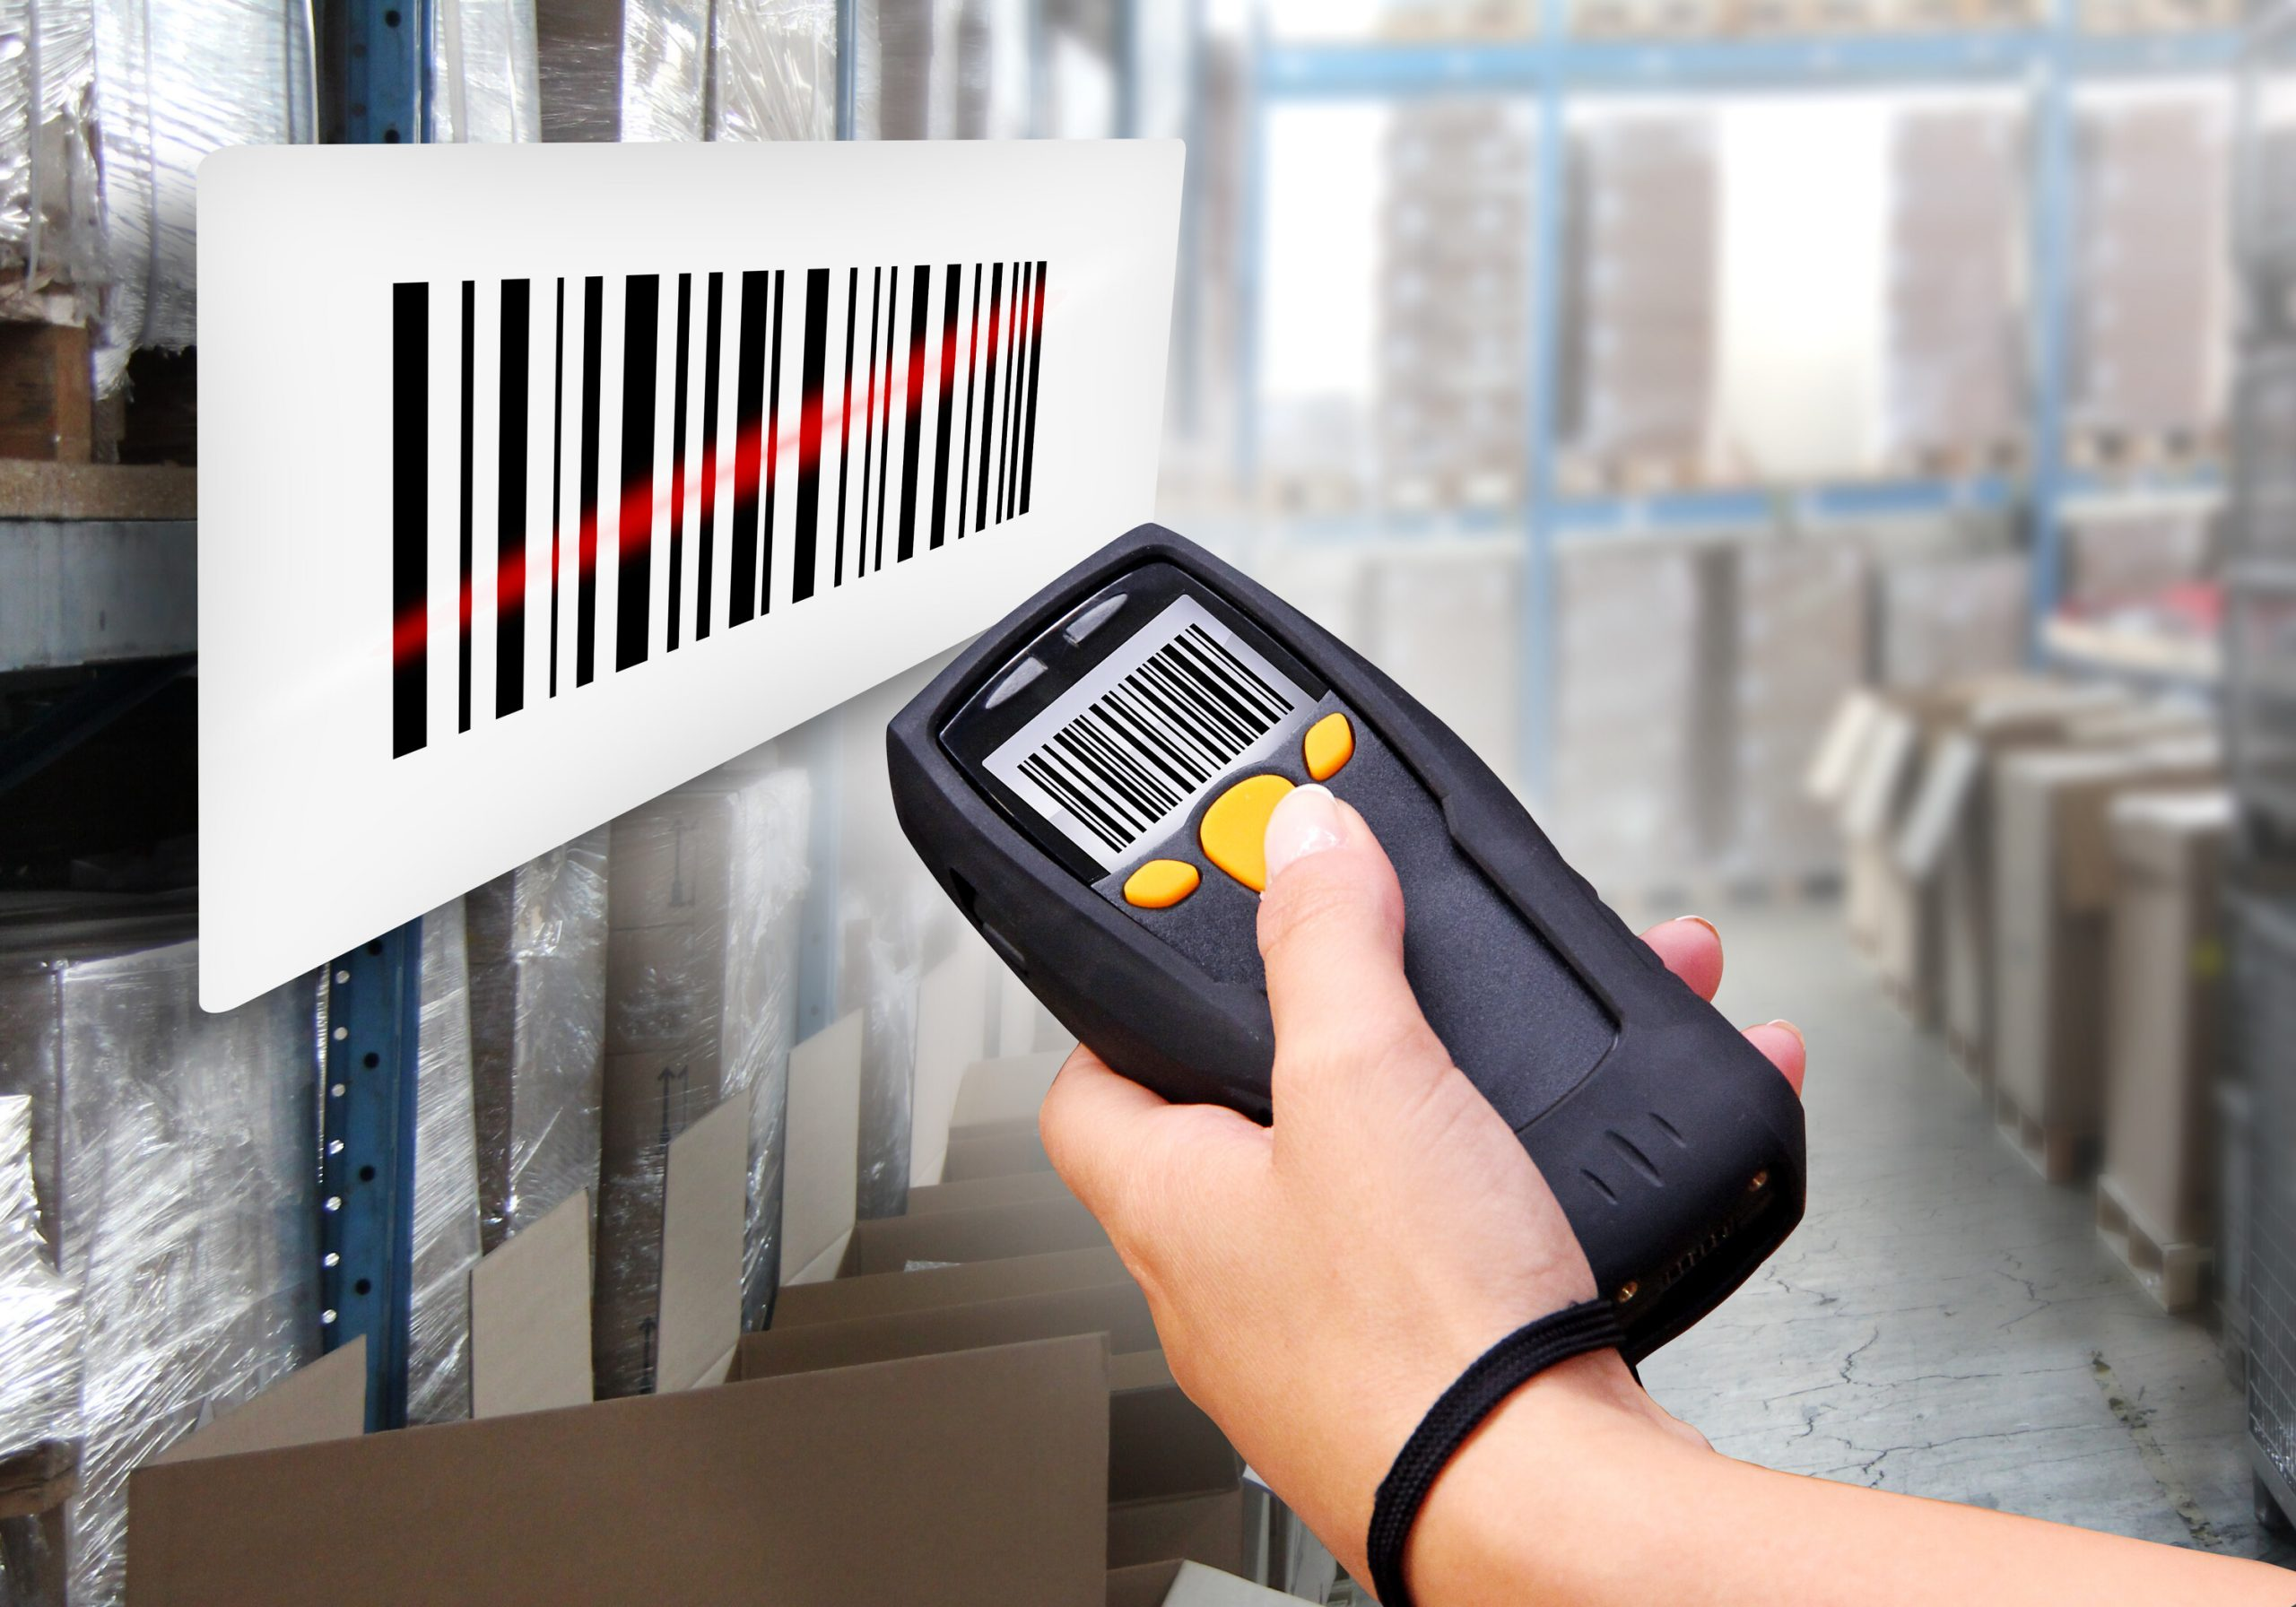 How a Barcode Scanning System for Inventory Management Benefits Your Warehouse